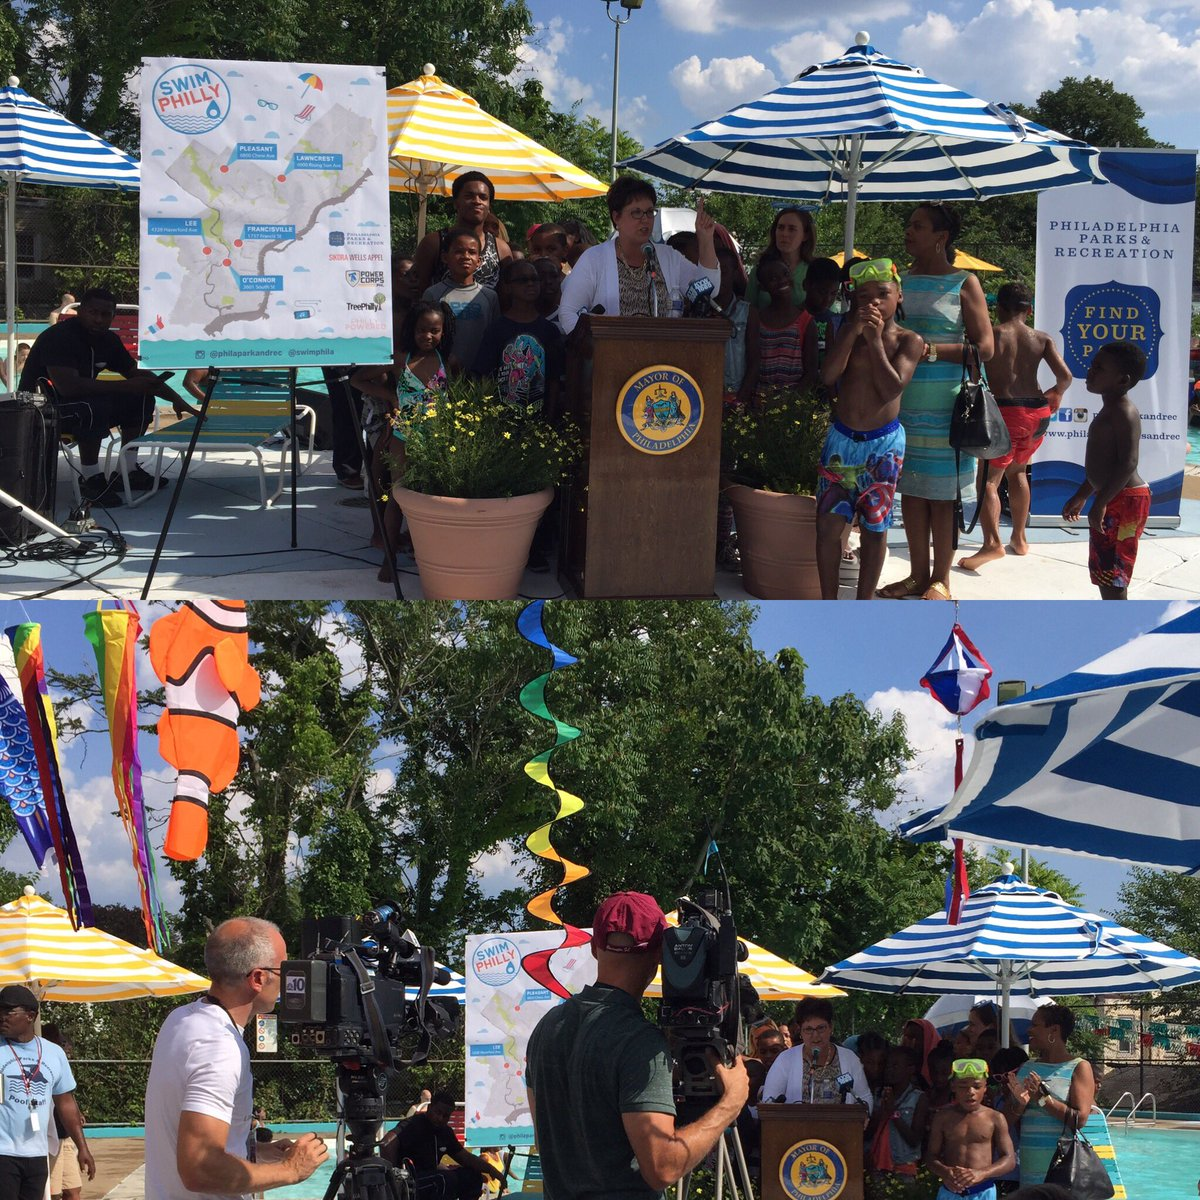 .@PhilaParkandRec Commish KOL officially kicksoff #SwimPhilly at Pleasant playground in Mt Airy #poolweather <br>http://pic.twitter.com/gpdbS0XBV5